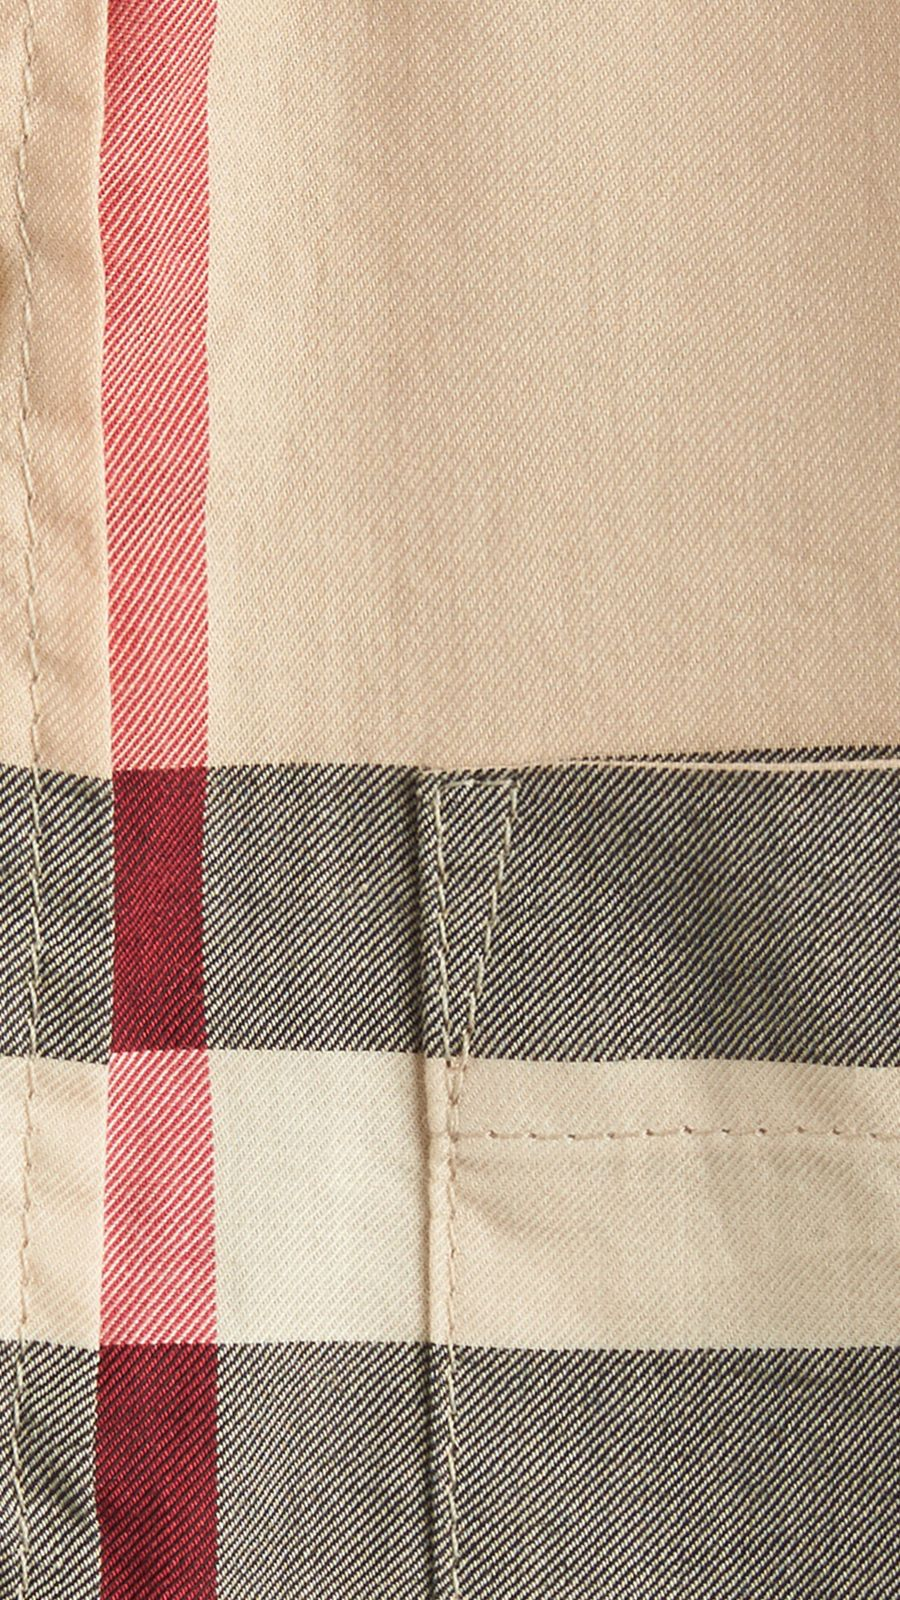 New classic Short-sleeve Check Cotton Twill Shirt New Classic - Image 2